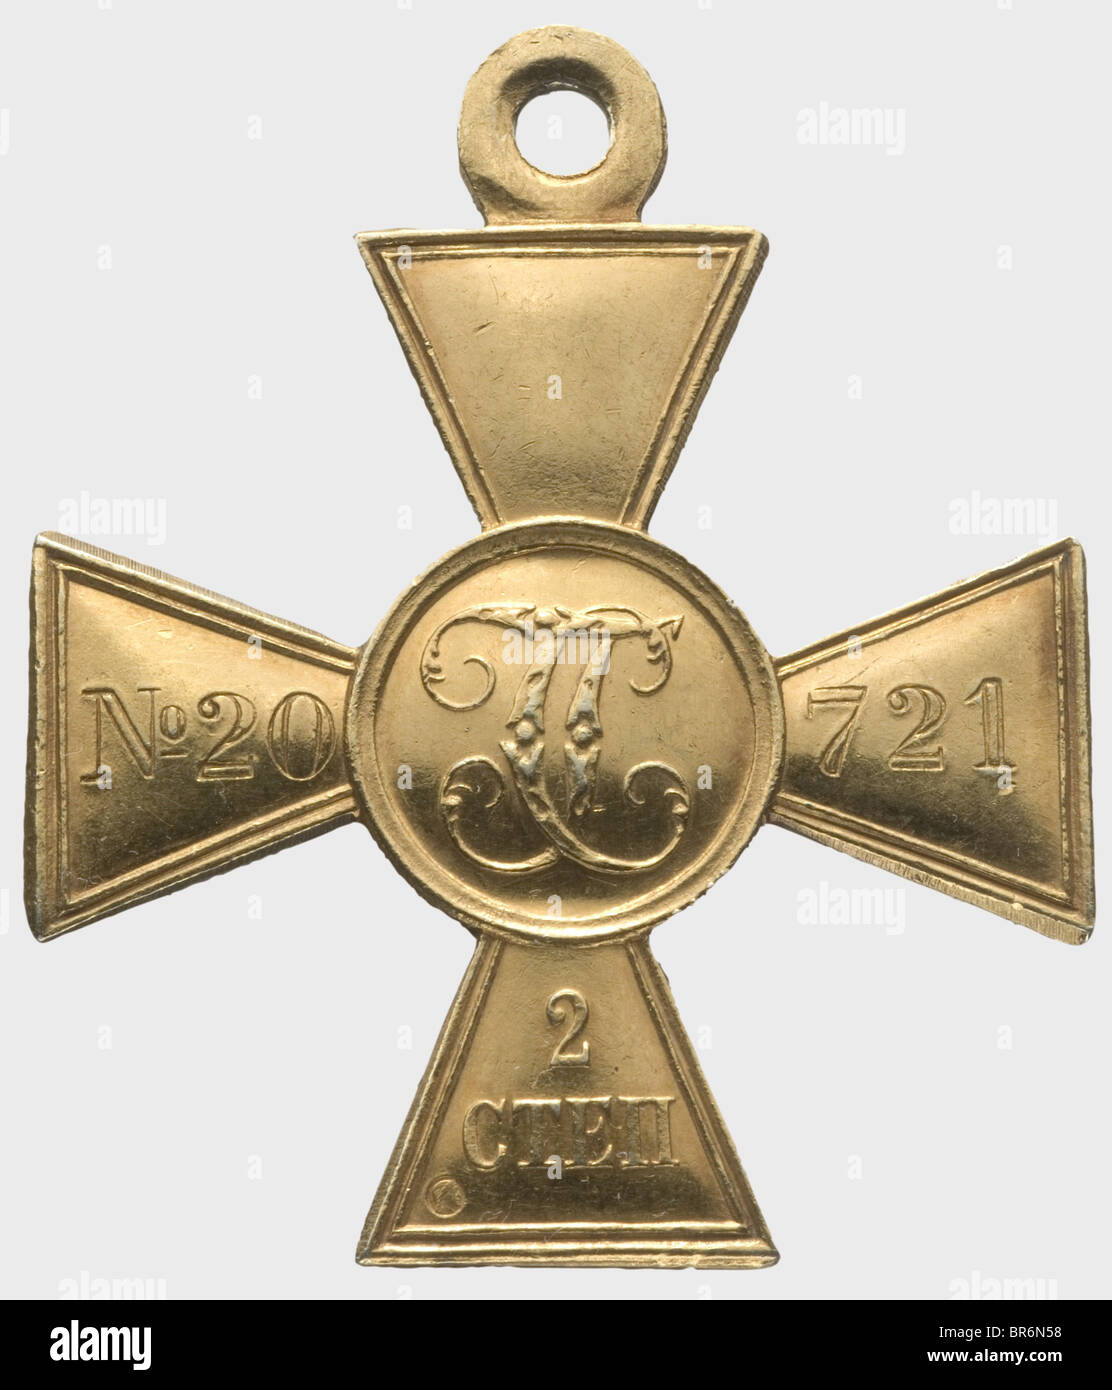 A Cross of St. George, 2nd Class in Gold., Gold, lower cross arm with kokoshnik punch on reverse. Numbered 'No. - Stock Image